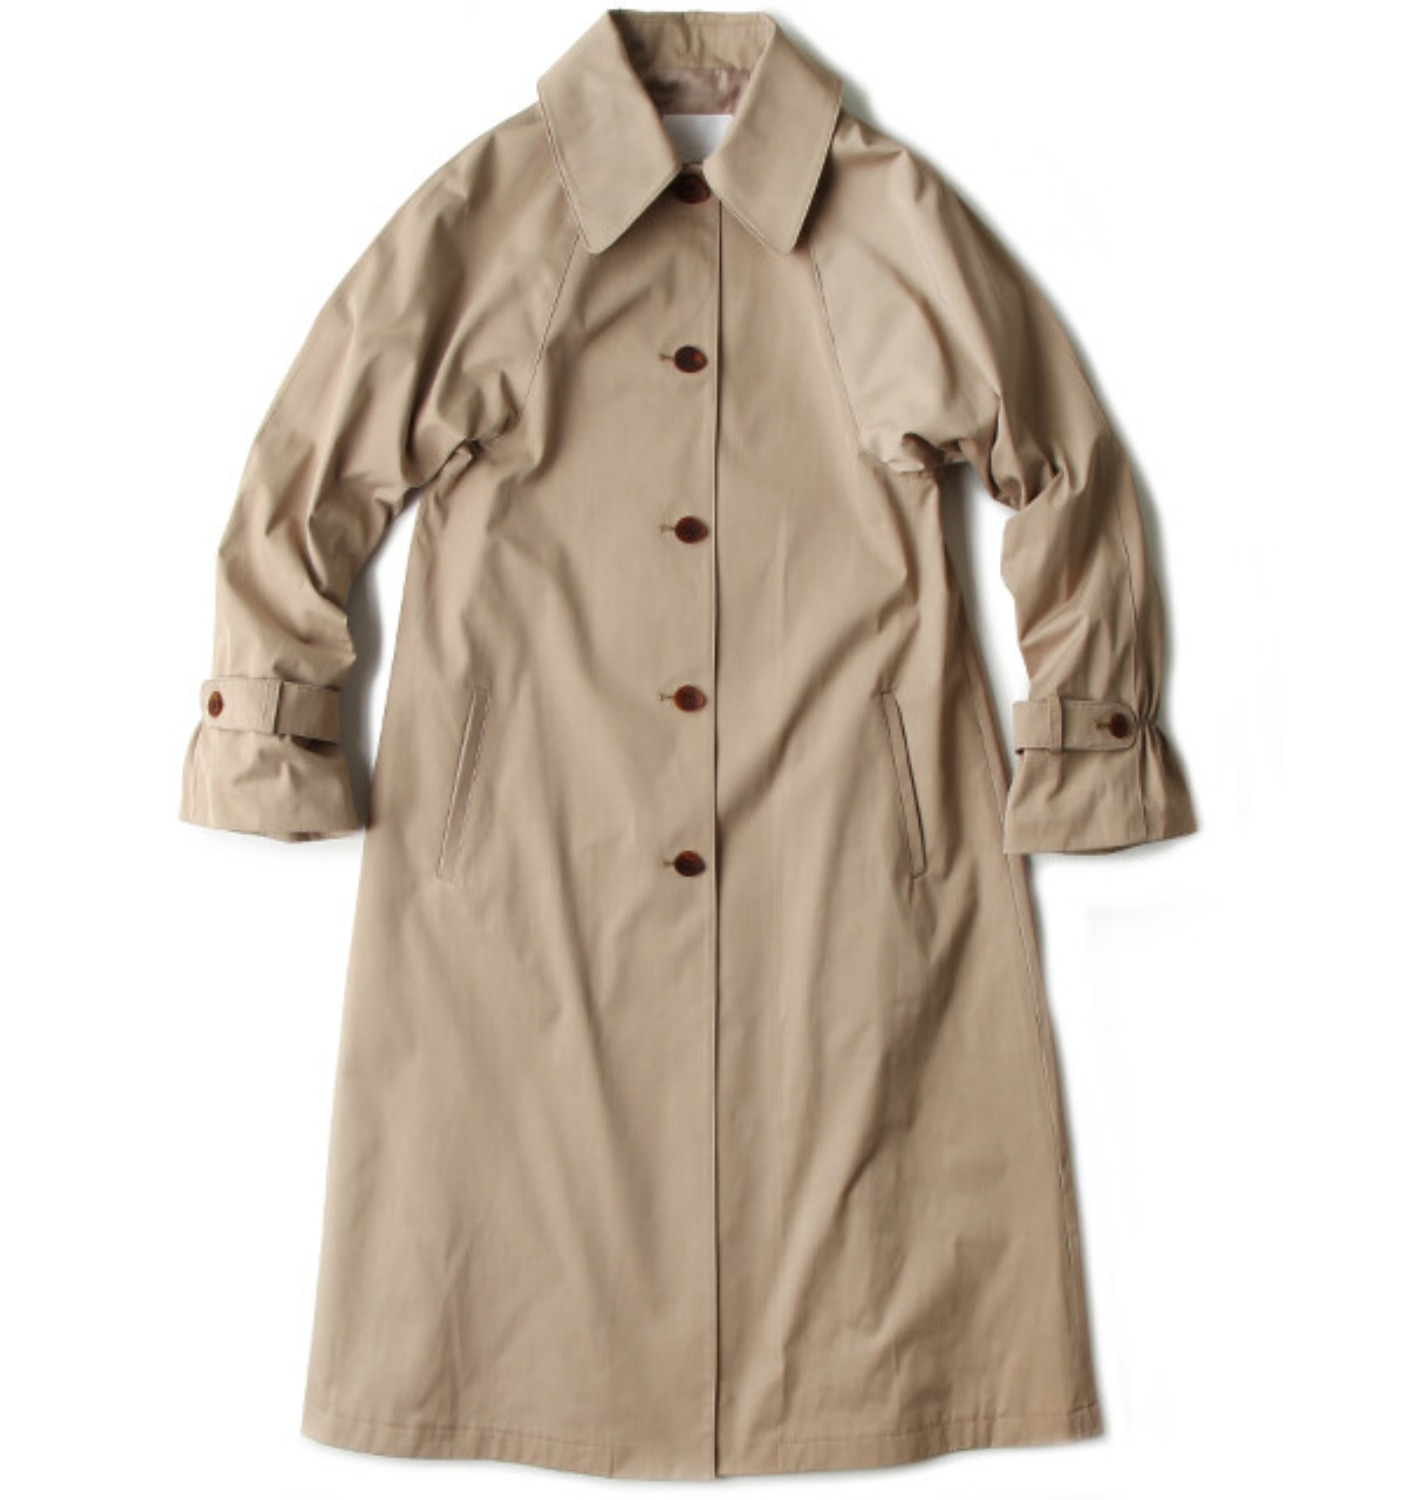 VINTAGE BLY A-LINE COAT CLASSIC BEIGE